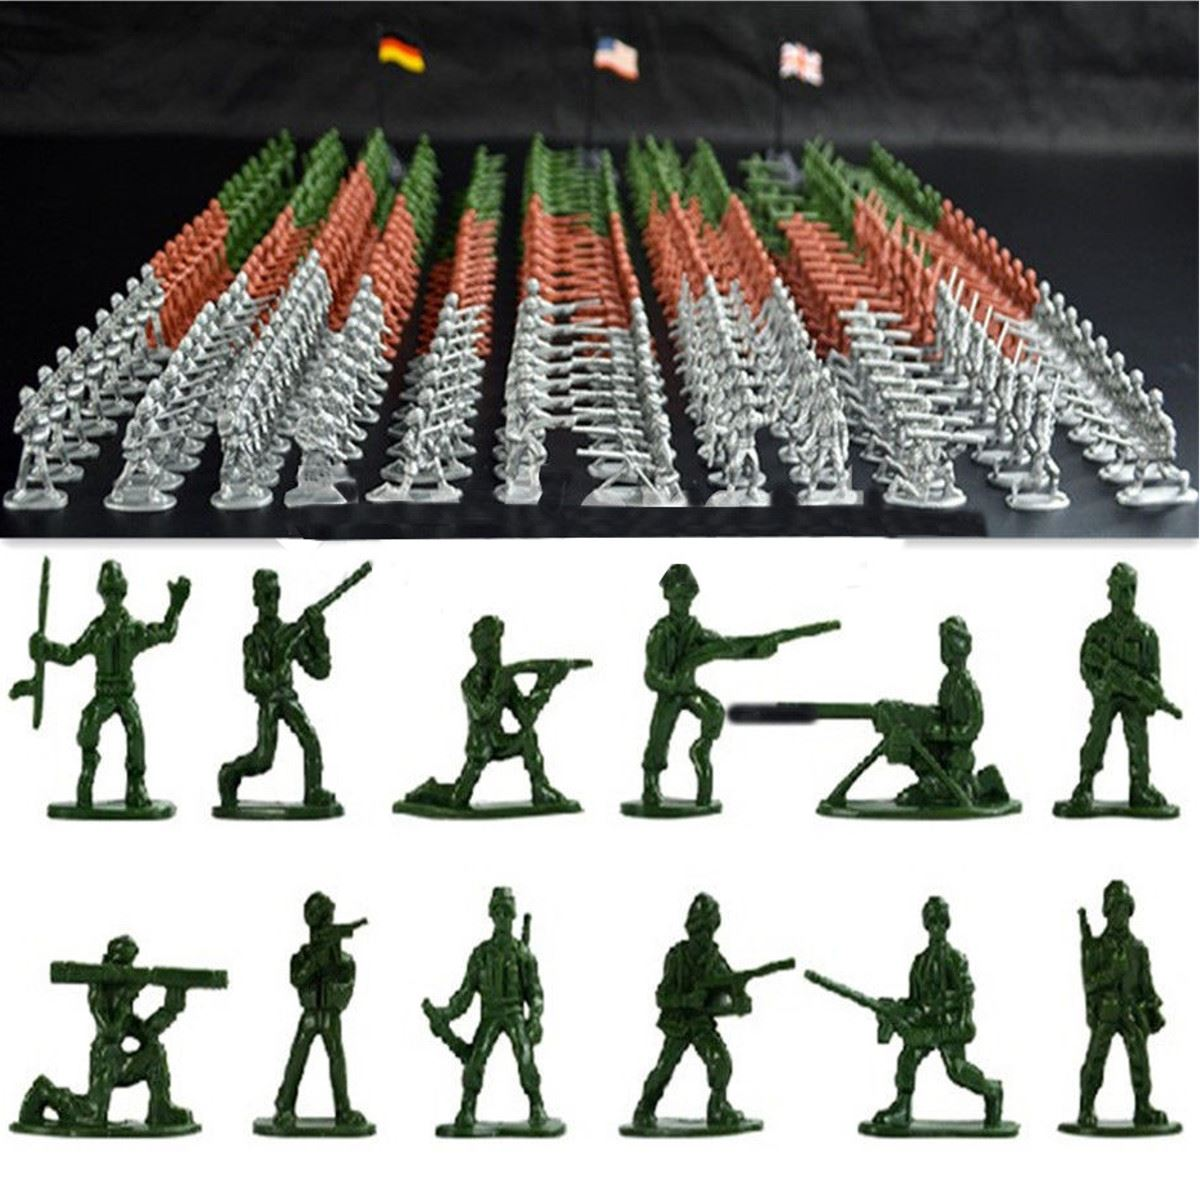 100pcs/set Military Plastic Toy Soldiers Army Men Figures 12 Poses Gift Toy Model Action Figure Toys For Children Boys soldiers character catboy owlette gekko cloak action figure toy plastic for boy birthday gift 6pcs set